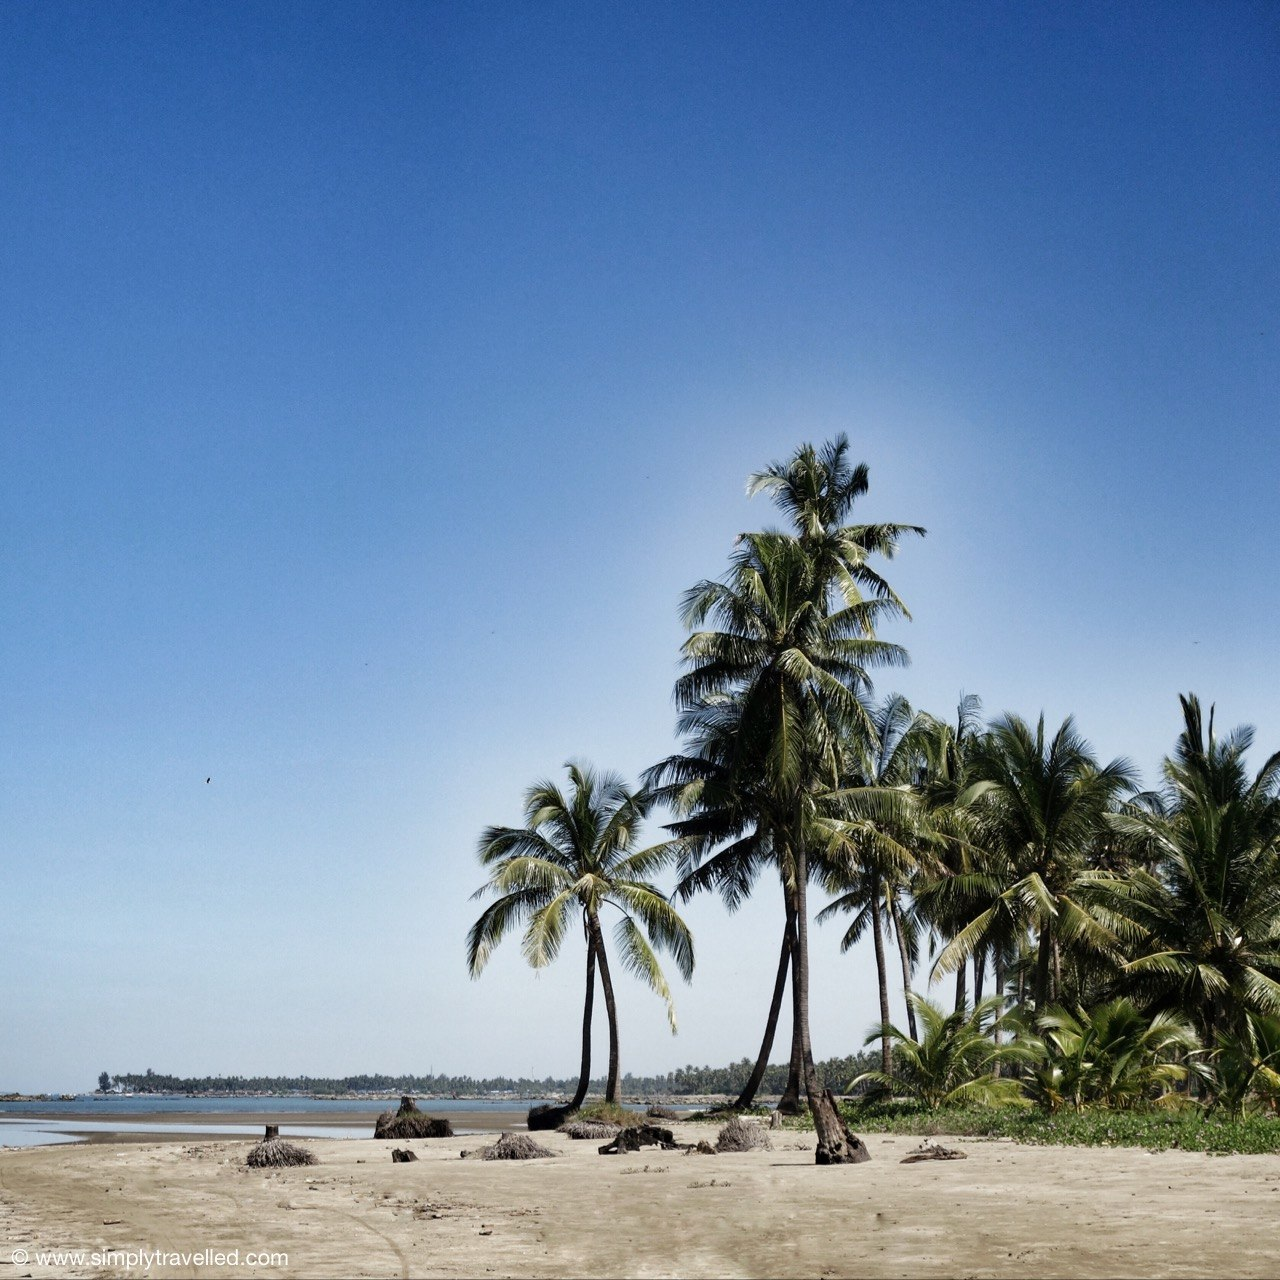 Island Life - Palm Trees ngwe saung beach